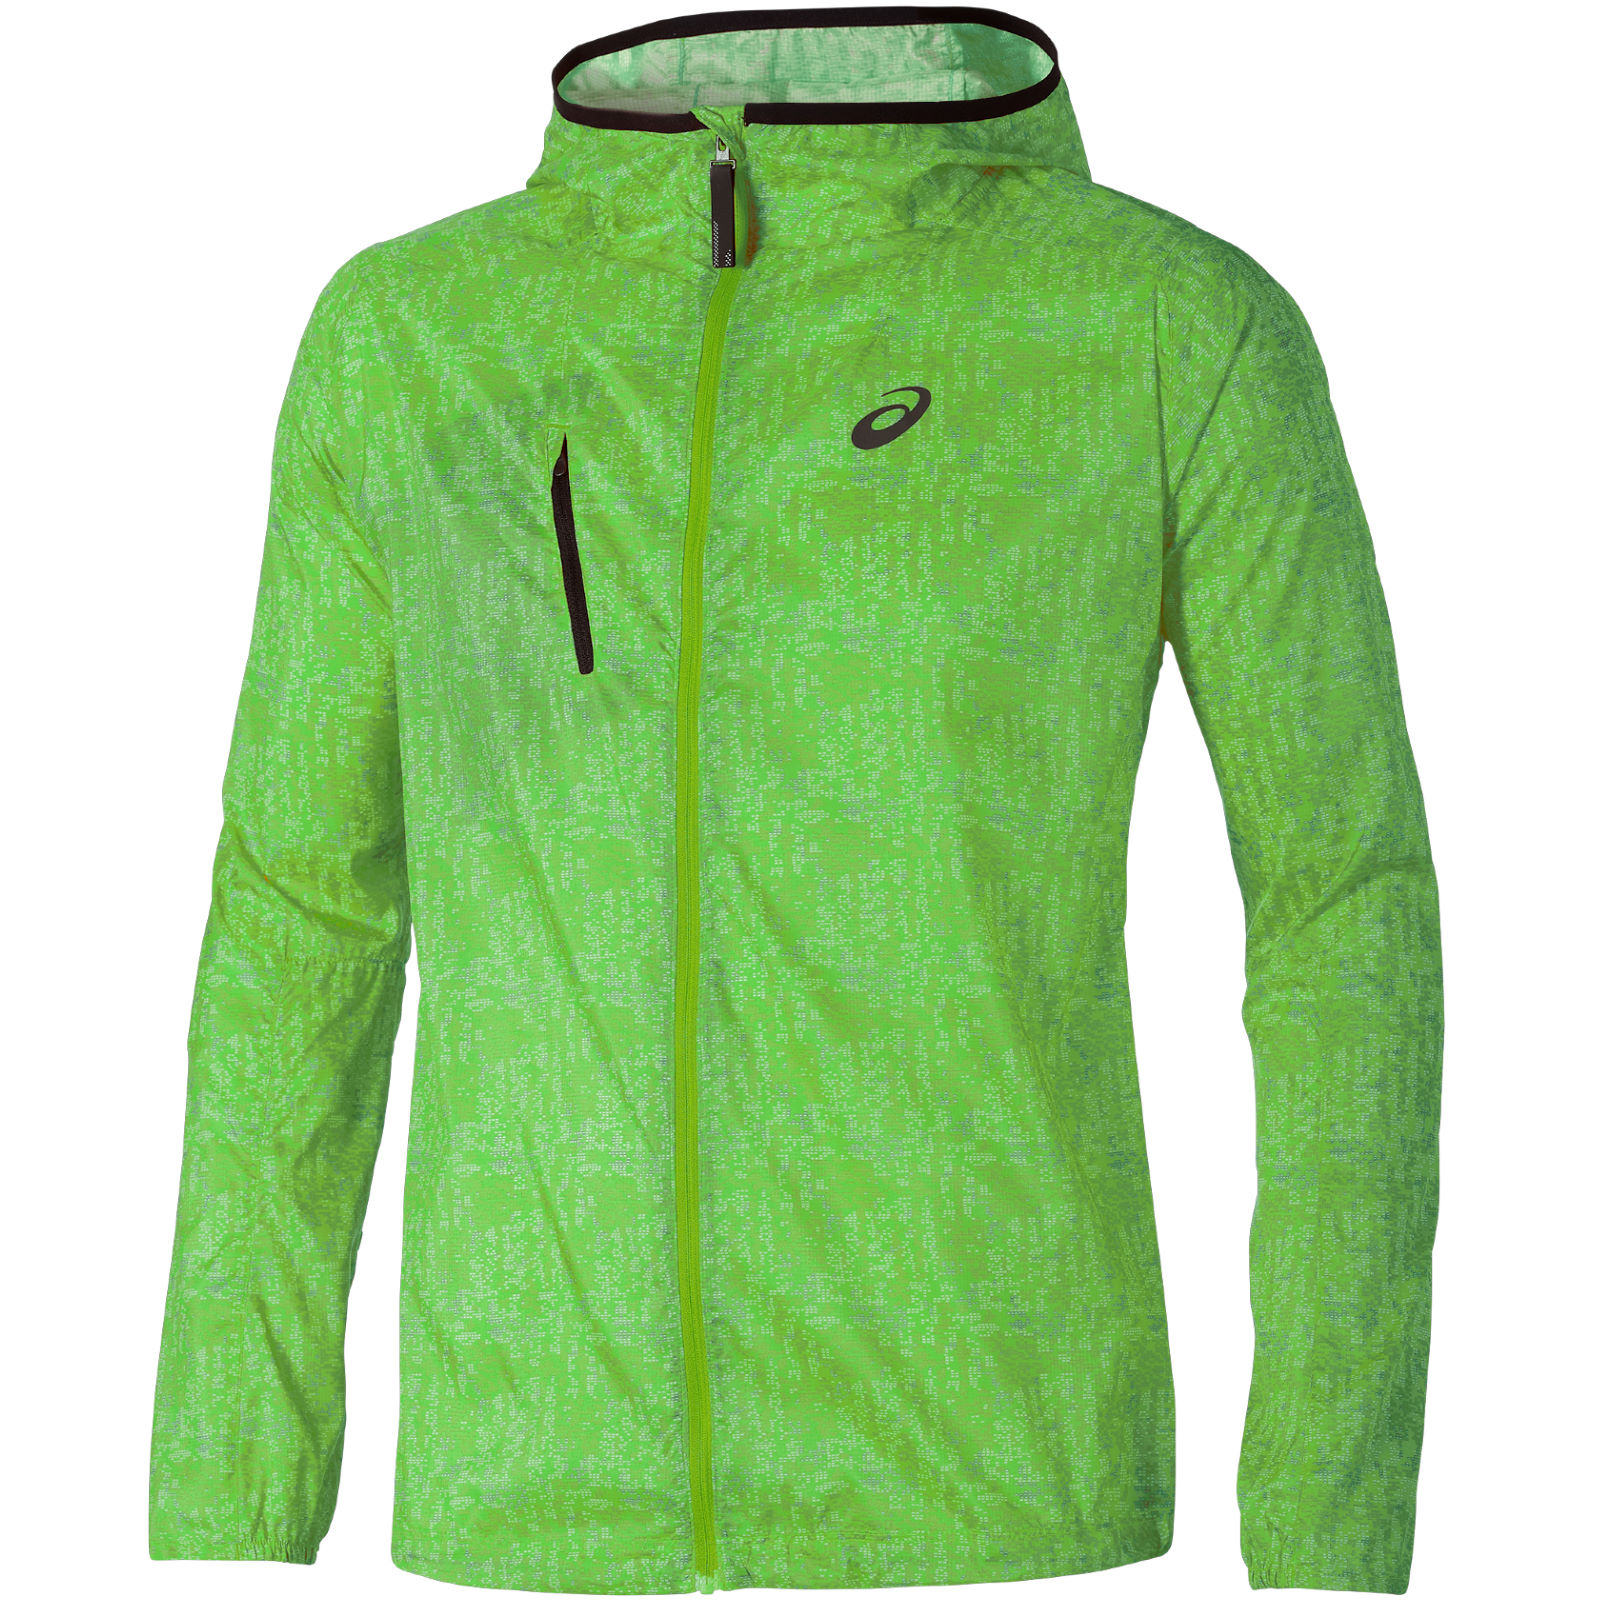 Wiggle Asics Fujitrail Packable Jacket Ss15